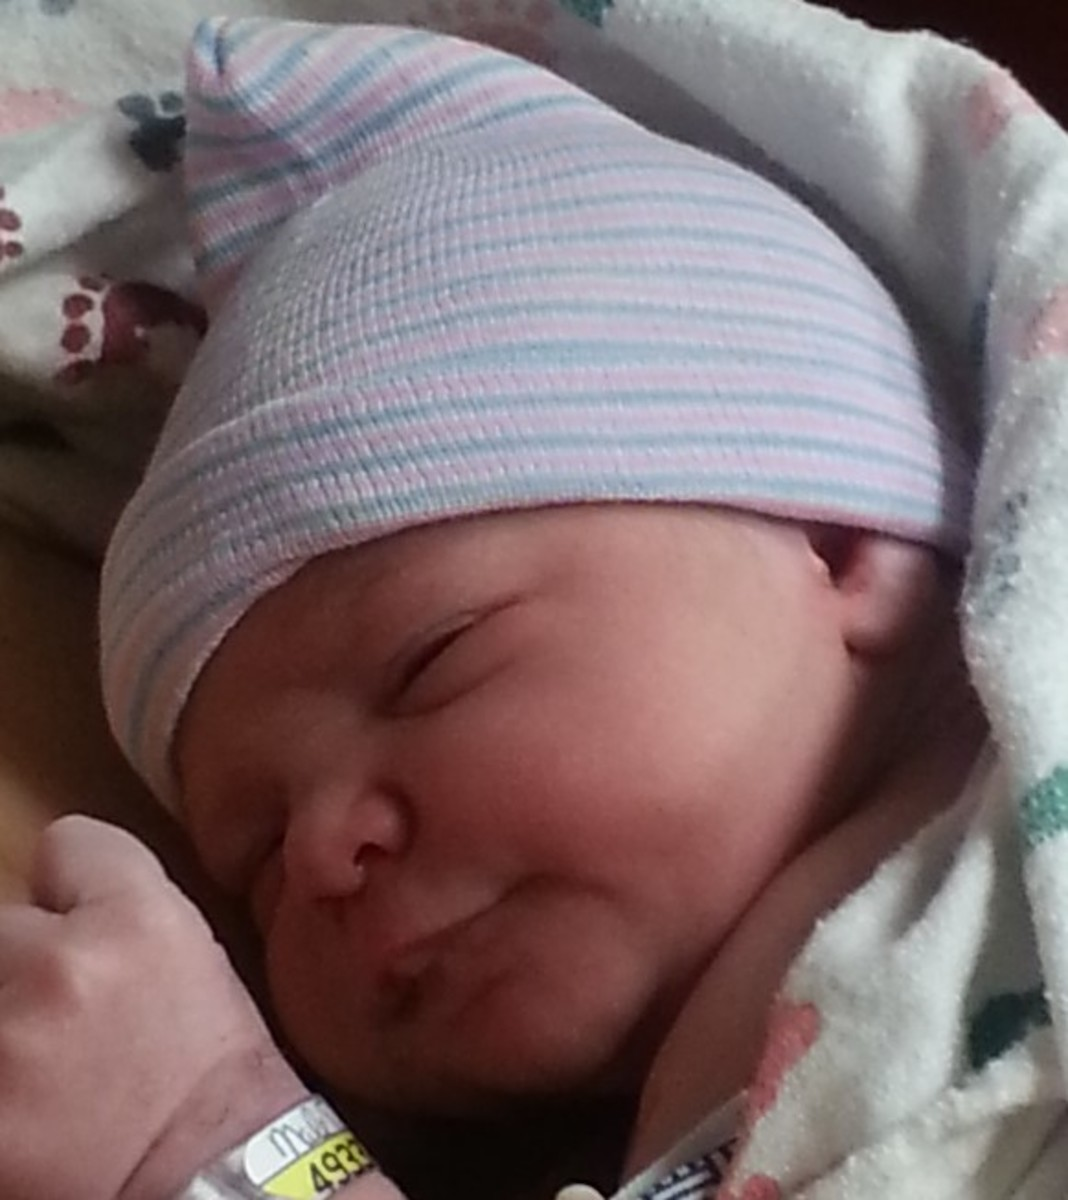 My new grandson, Charlie, on the day of his birth, December 28, 2015.